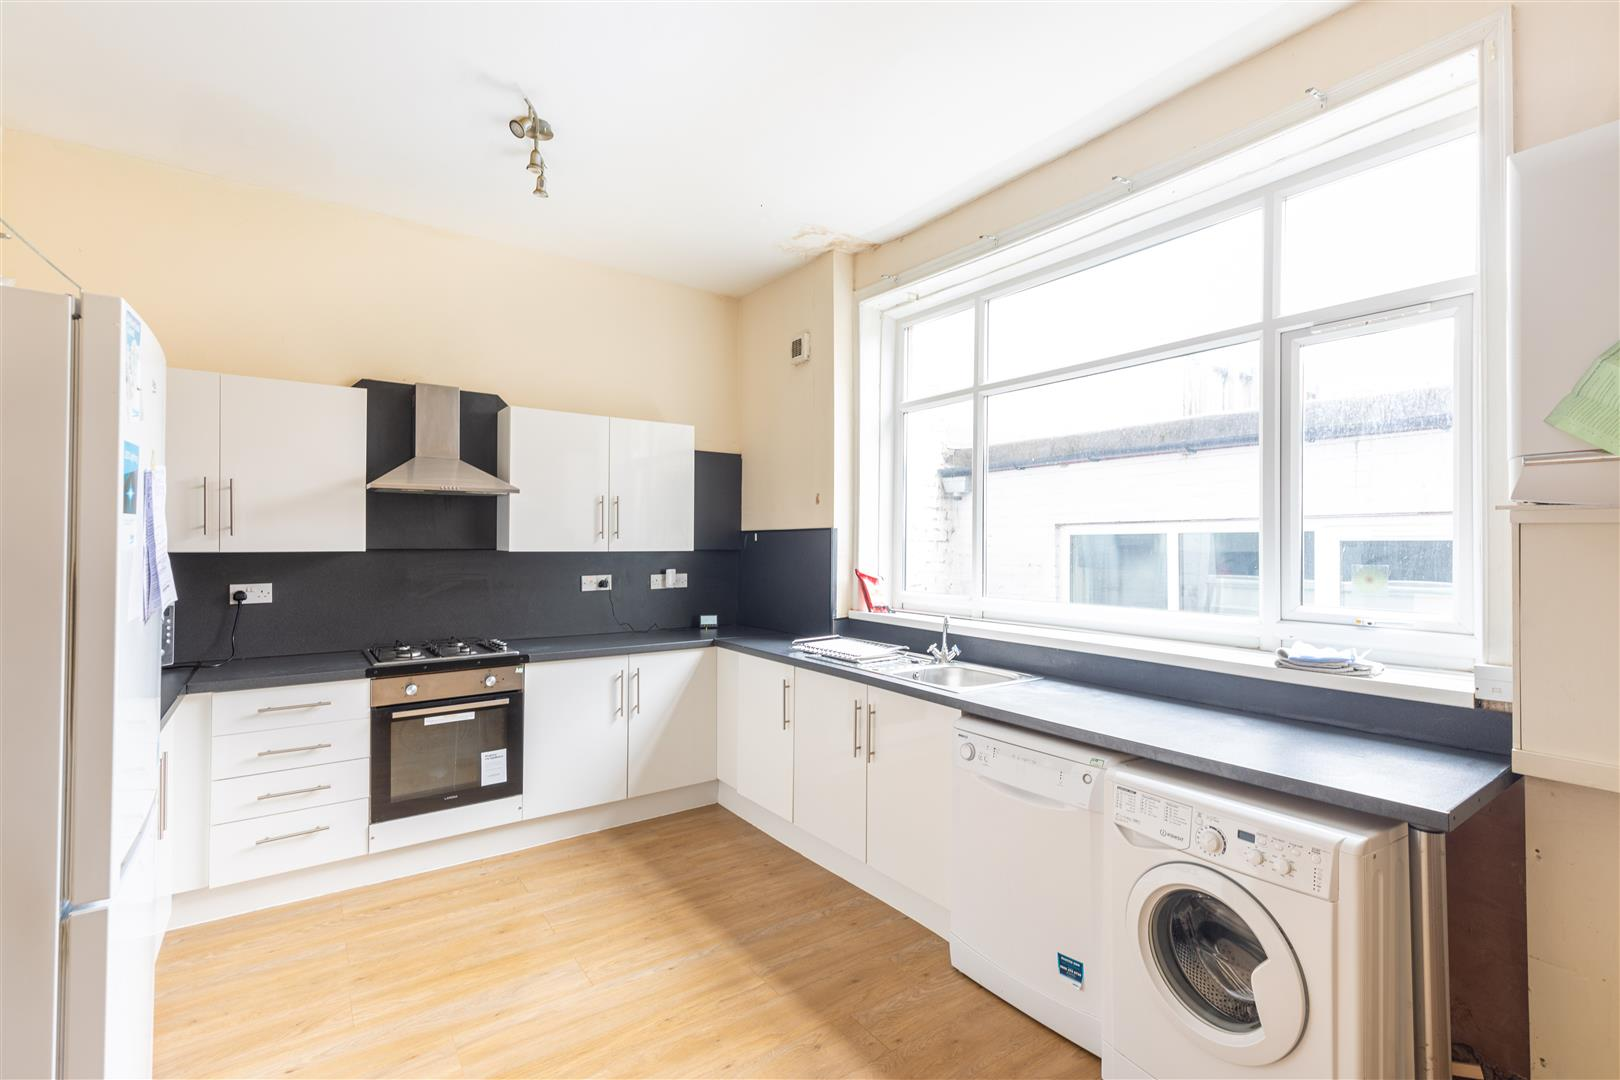 5 bed terraced house to rent in Newcastle Upon Tyne, NE6 5BT  - Property Image 6